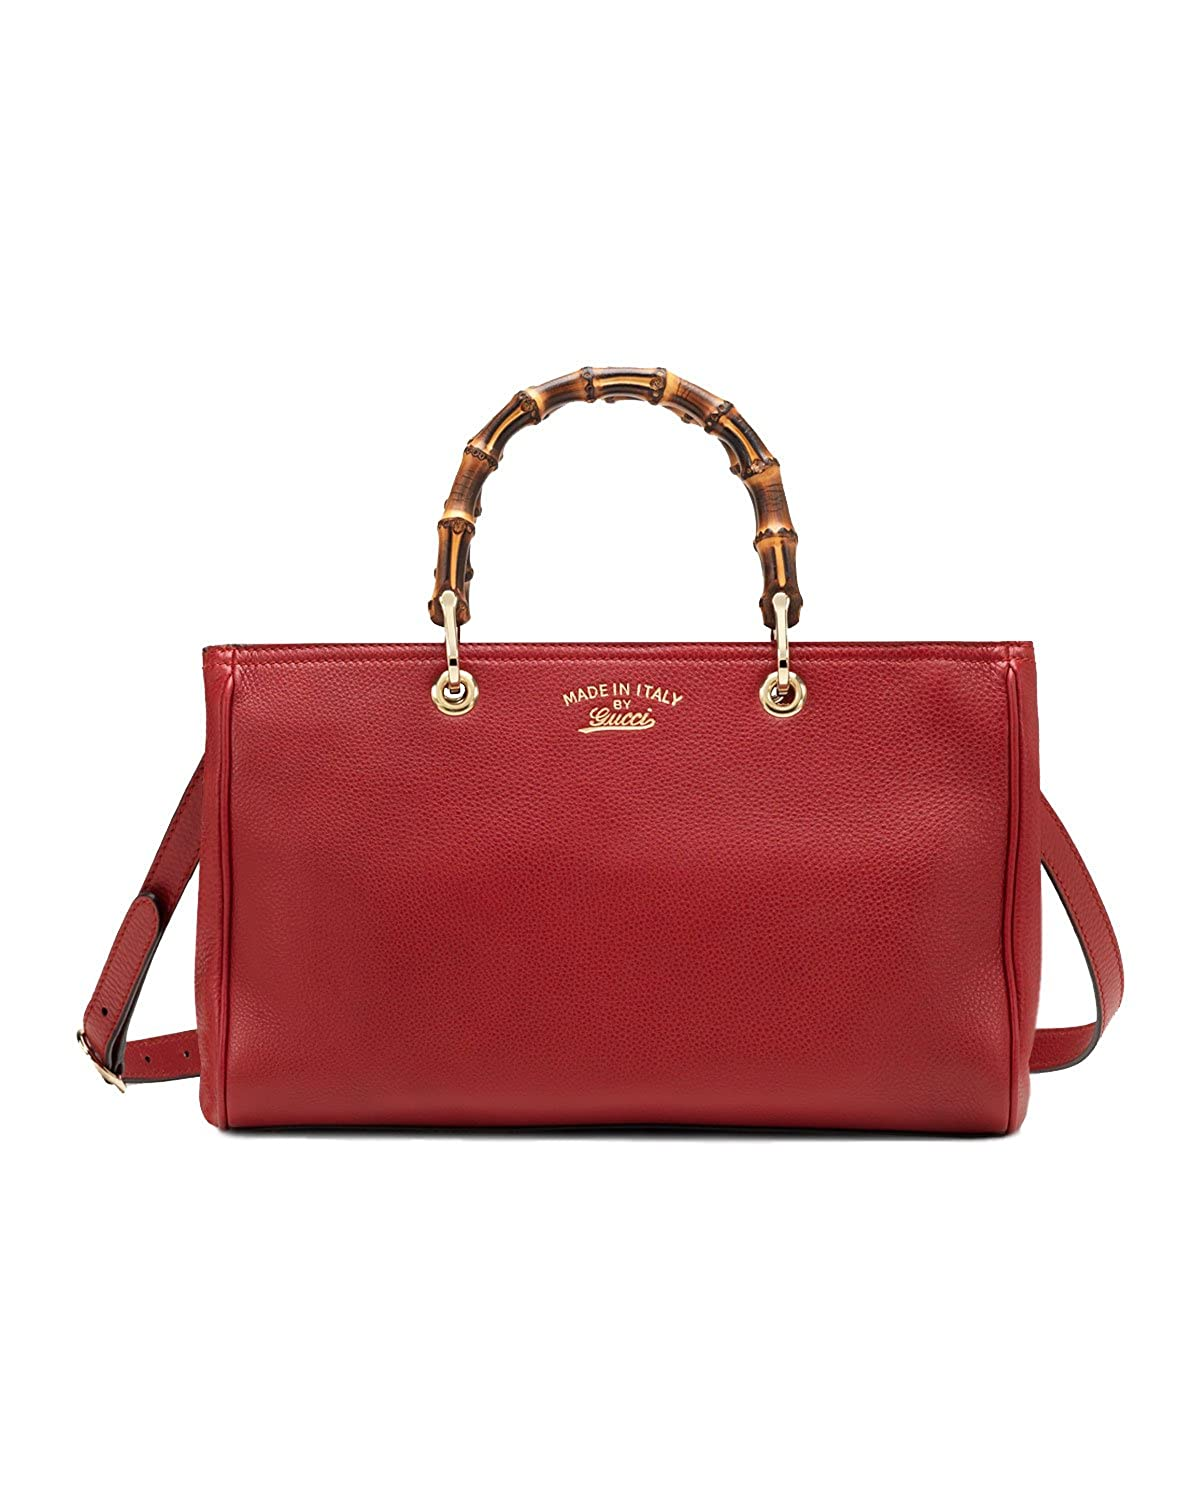 c84edc519b Gucci Bamboo Shopper Leather Tote Bag. (Red): Amazon.ca: Shoes ...